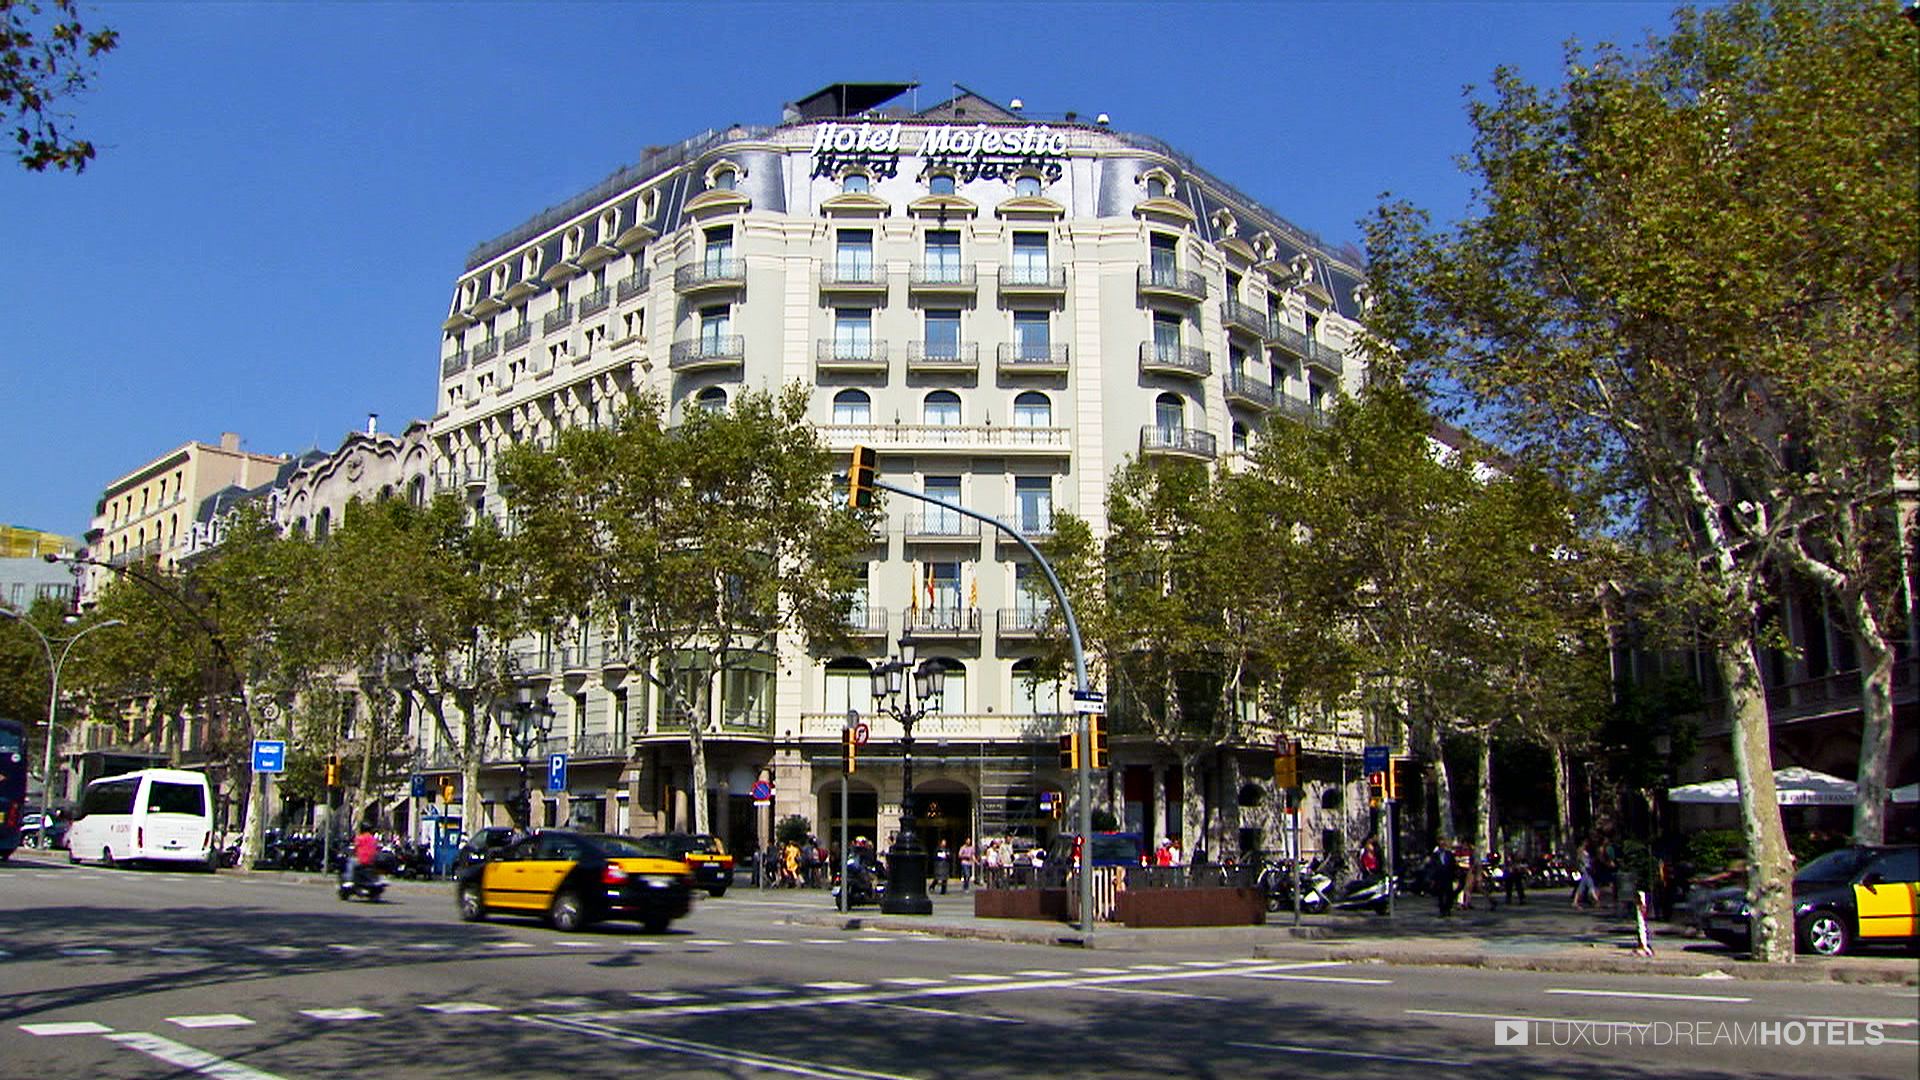 Luxury hotel hotel majestic barcelona spain luxury dream hotels